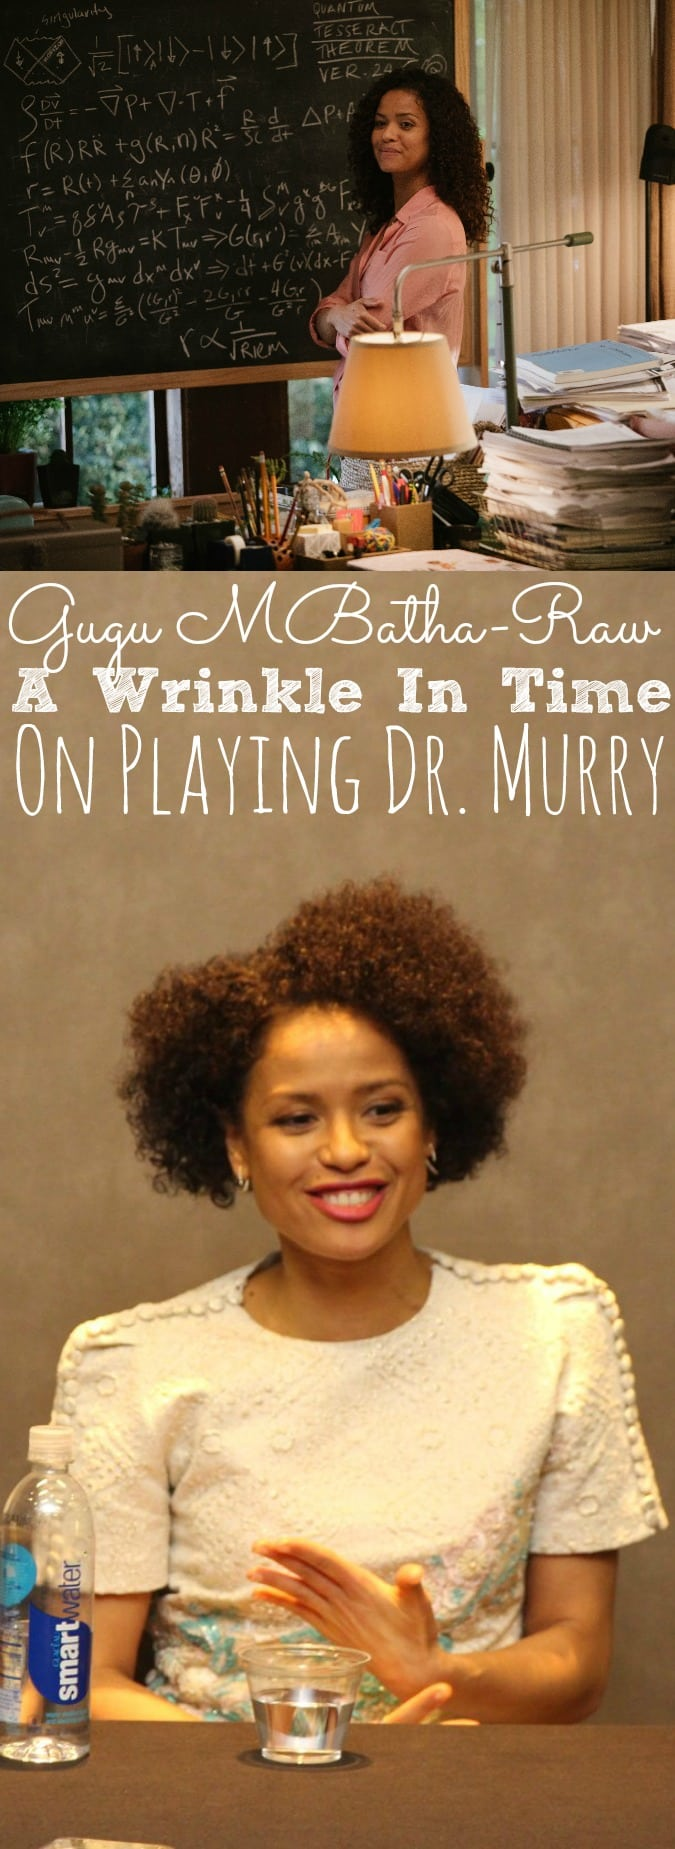 Gugu Mbatha-Raw Interview A Wrinkle In Time | On Her Role As Dr. Murry